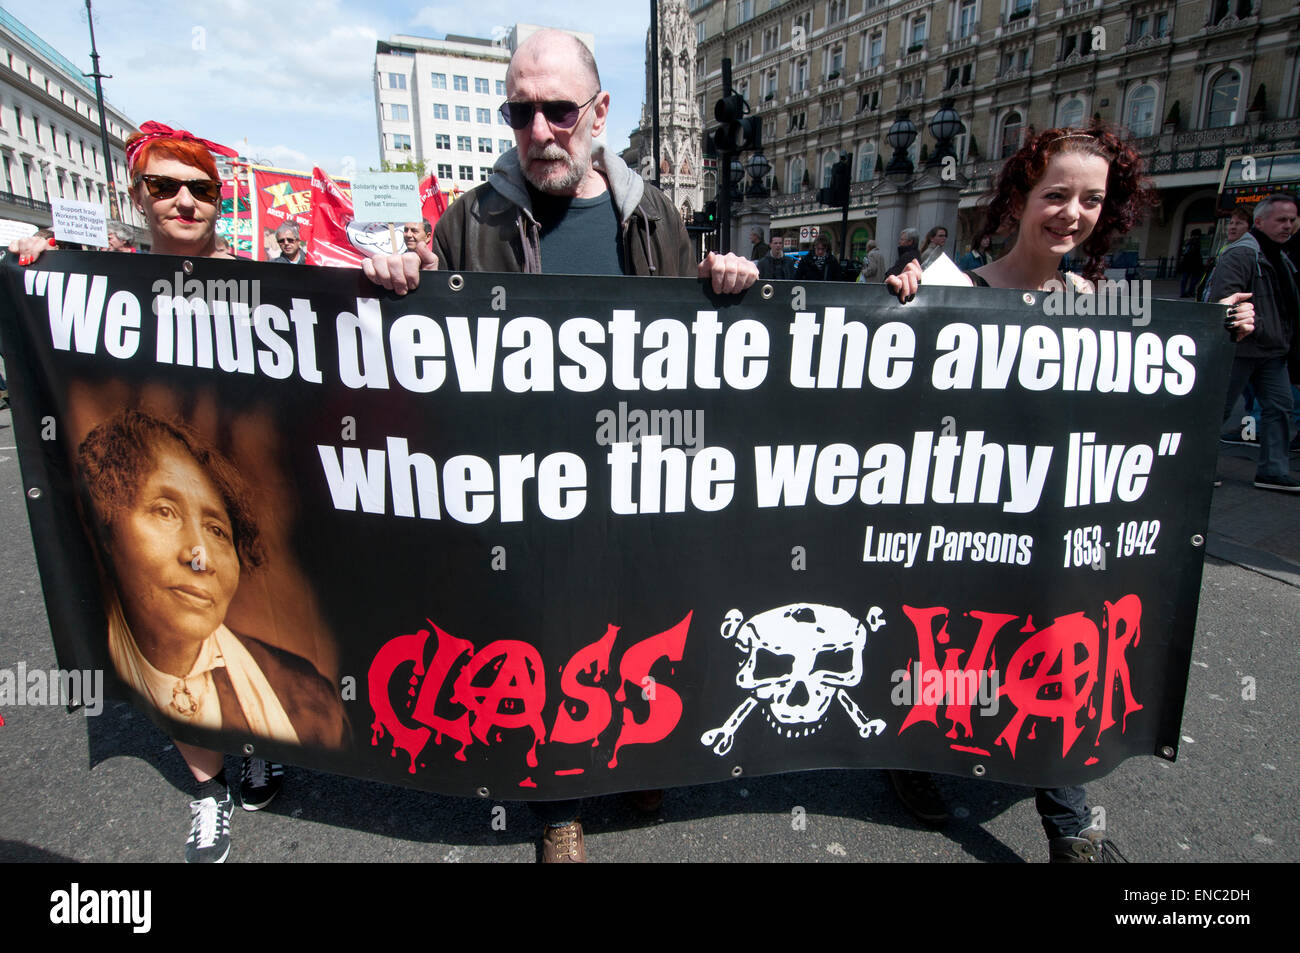 London.Mayday demonstration 2015. Class war banner quoting Lucy Parsons. - Stock Image